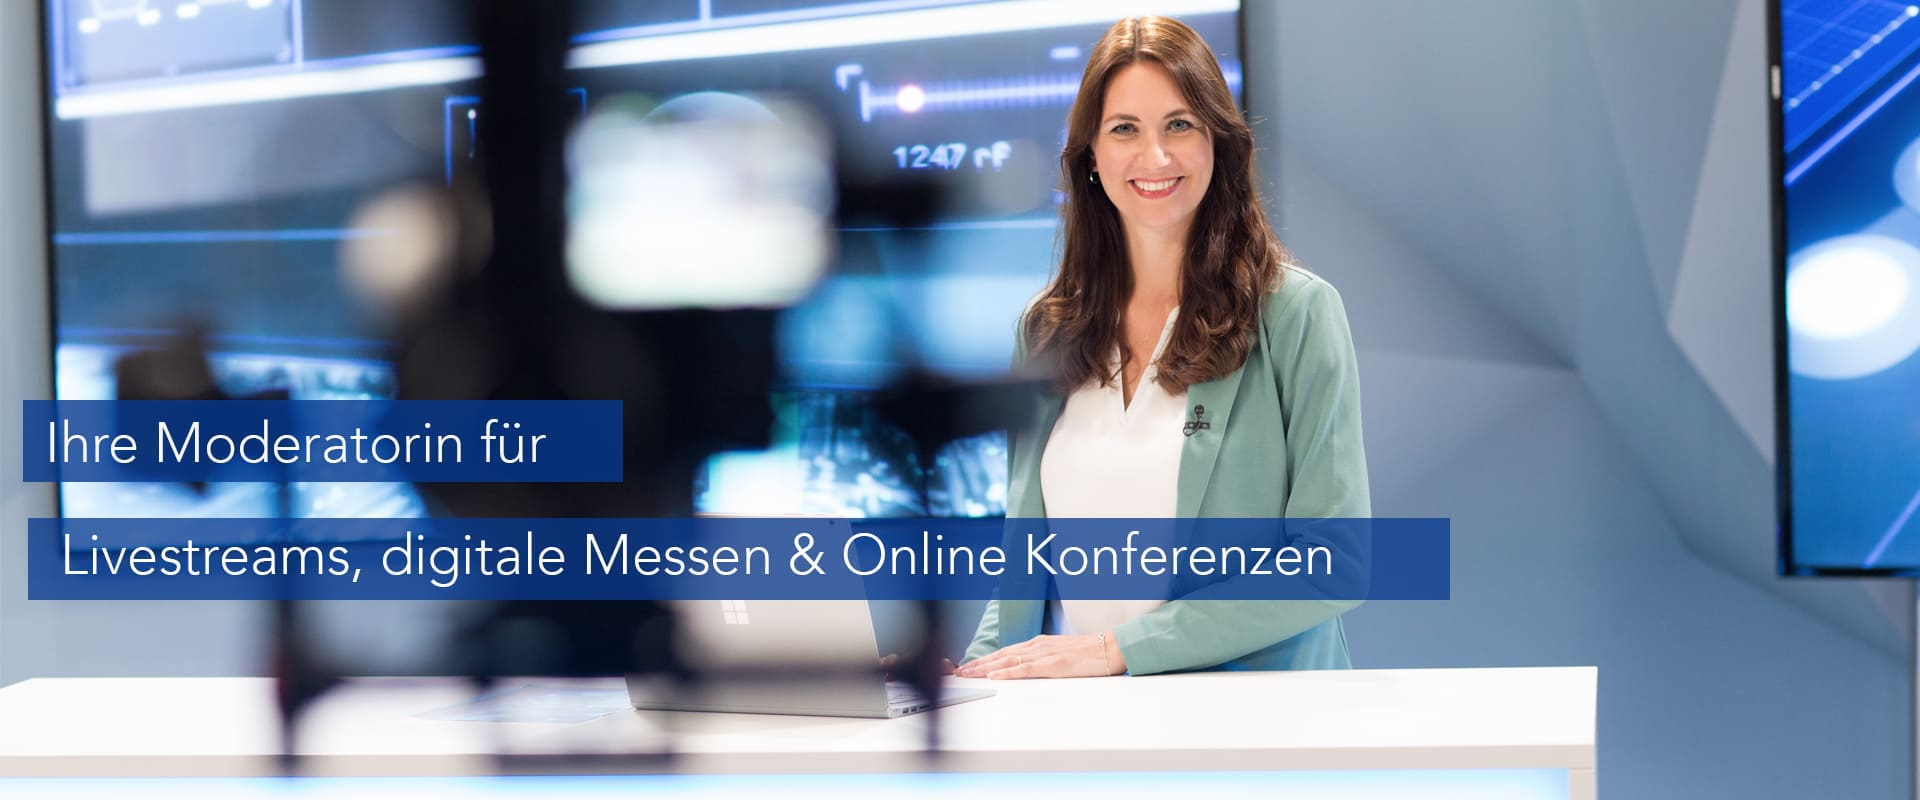 Moderation Livestream, digitale Messe